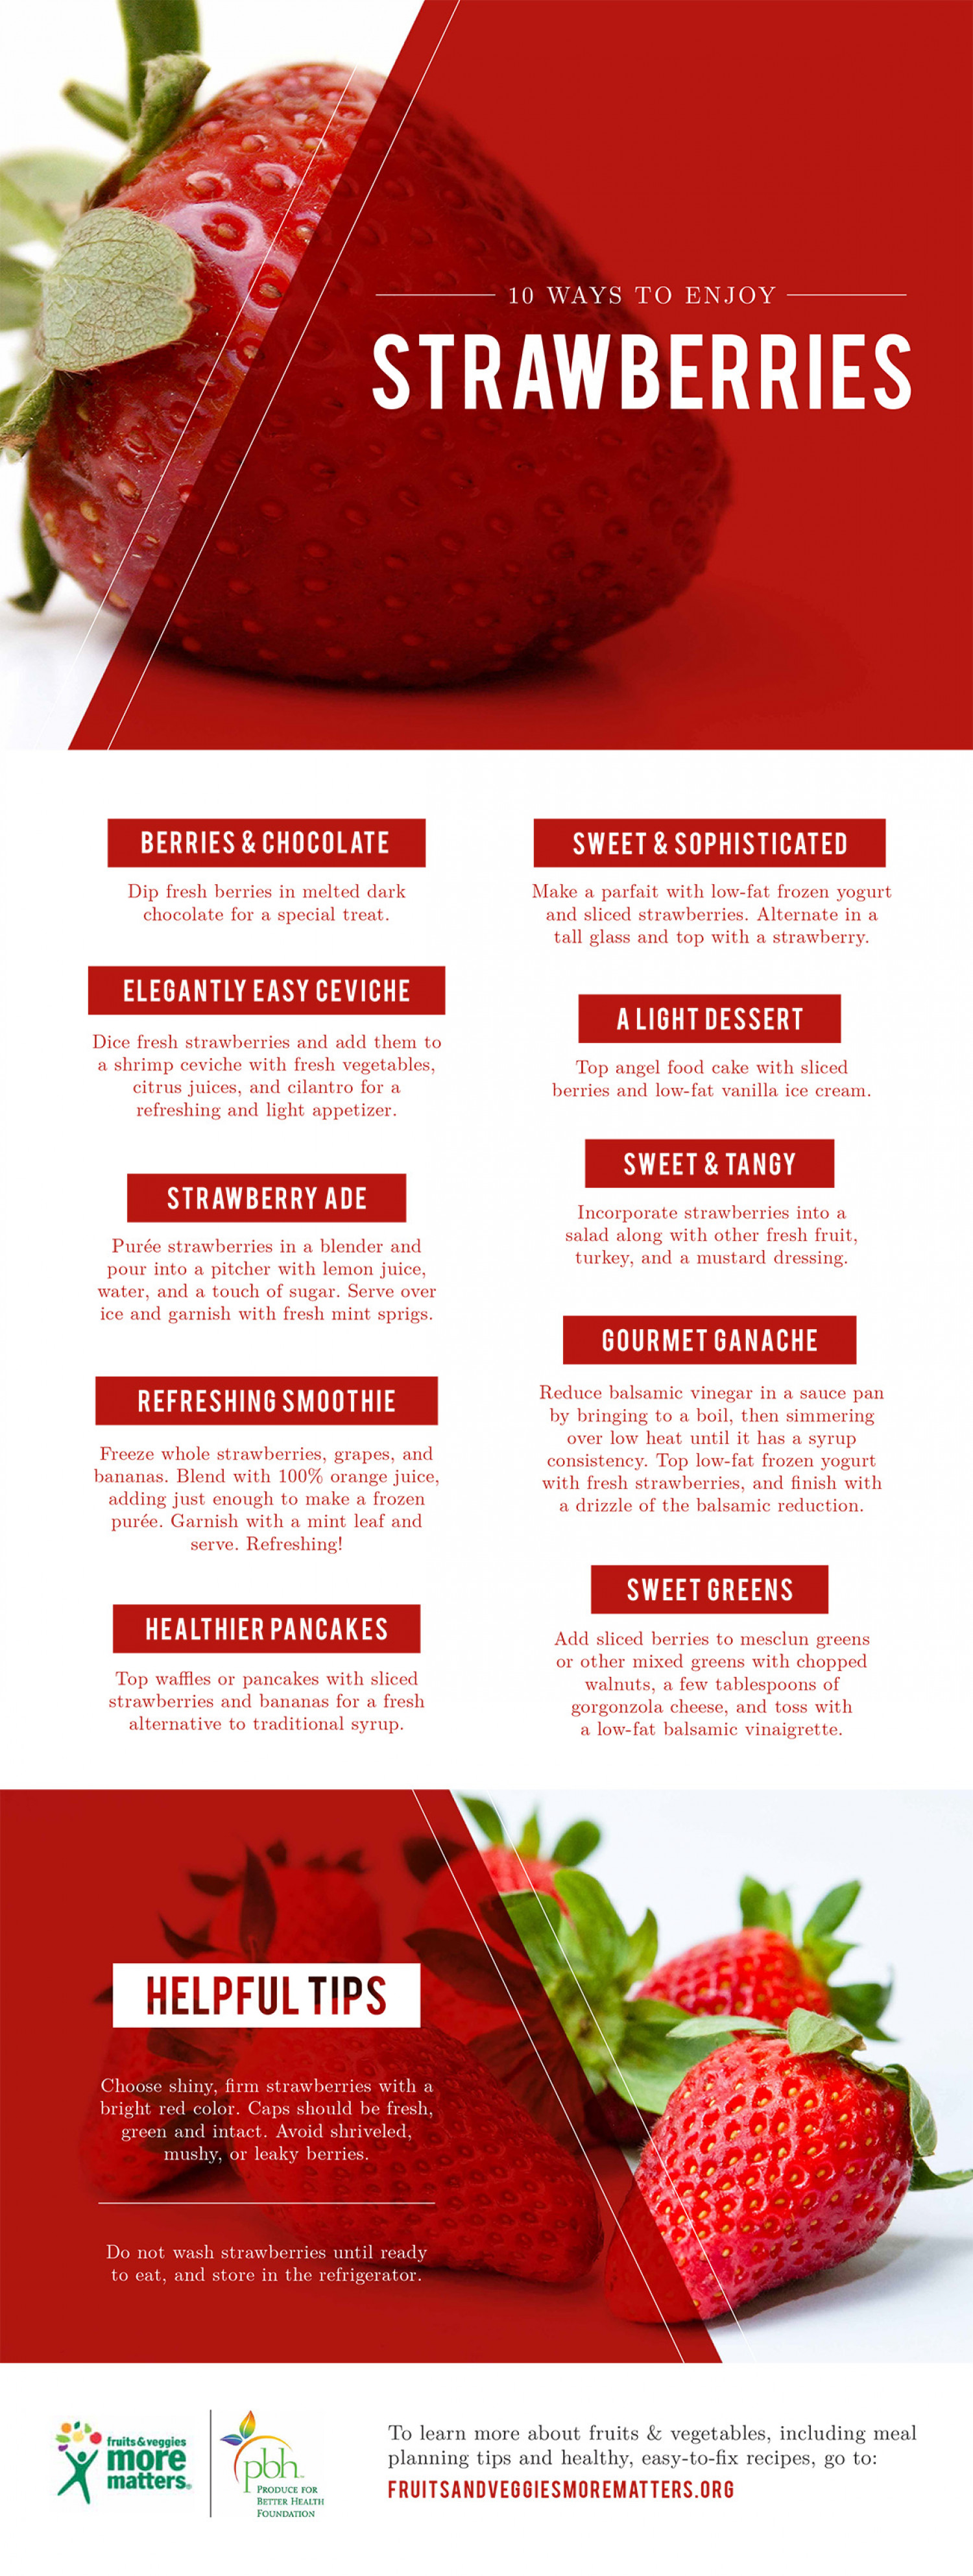 10 Ways to Enjoy Strawberries Infographic